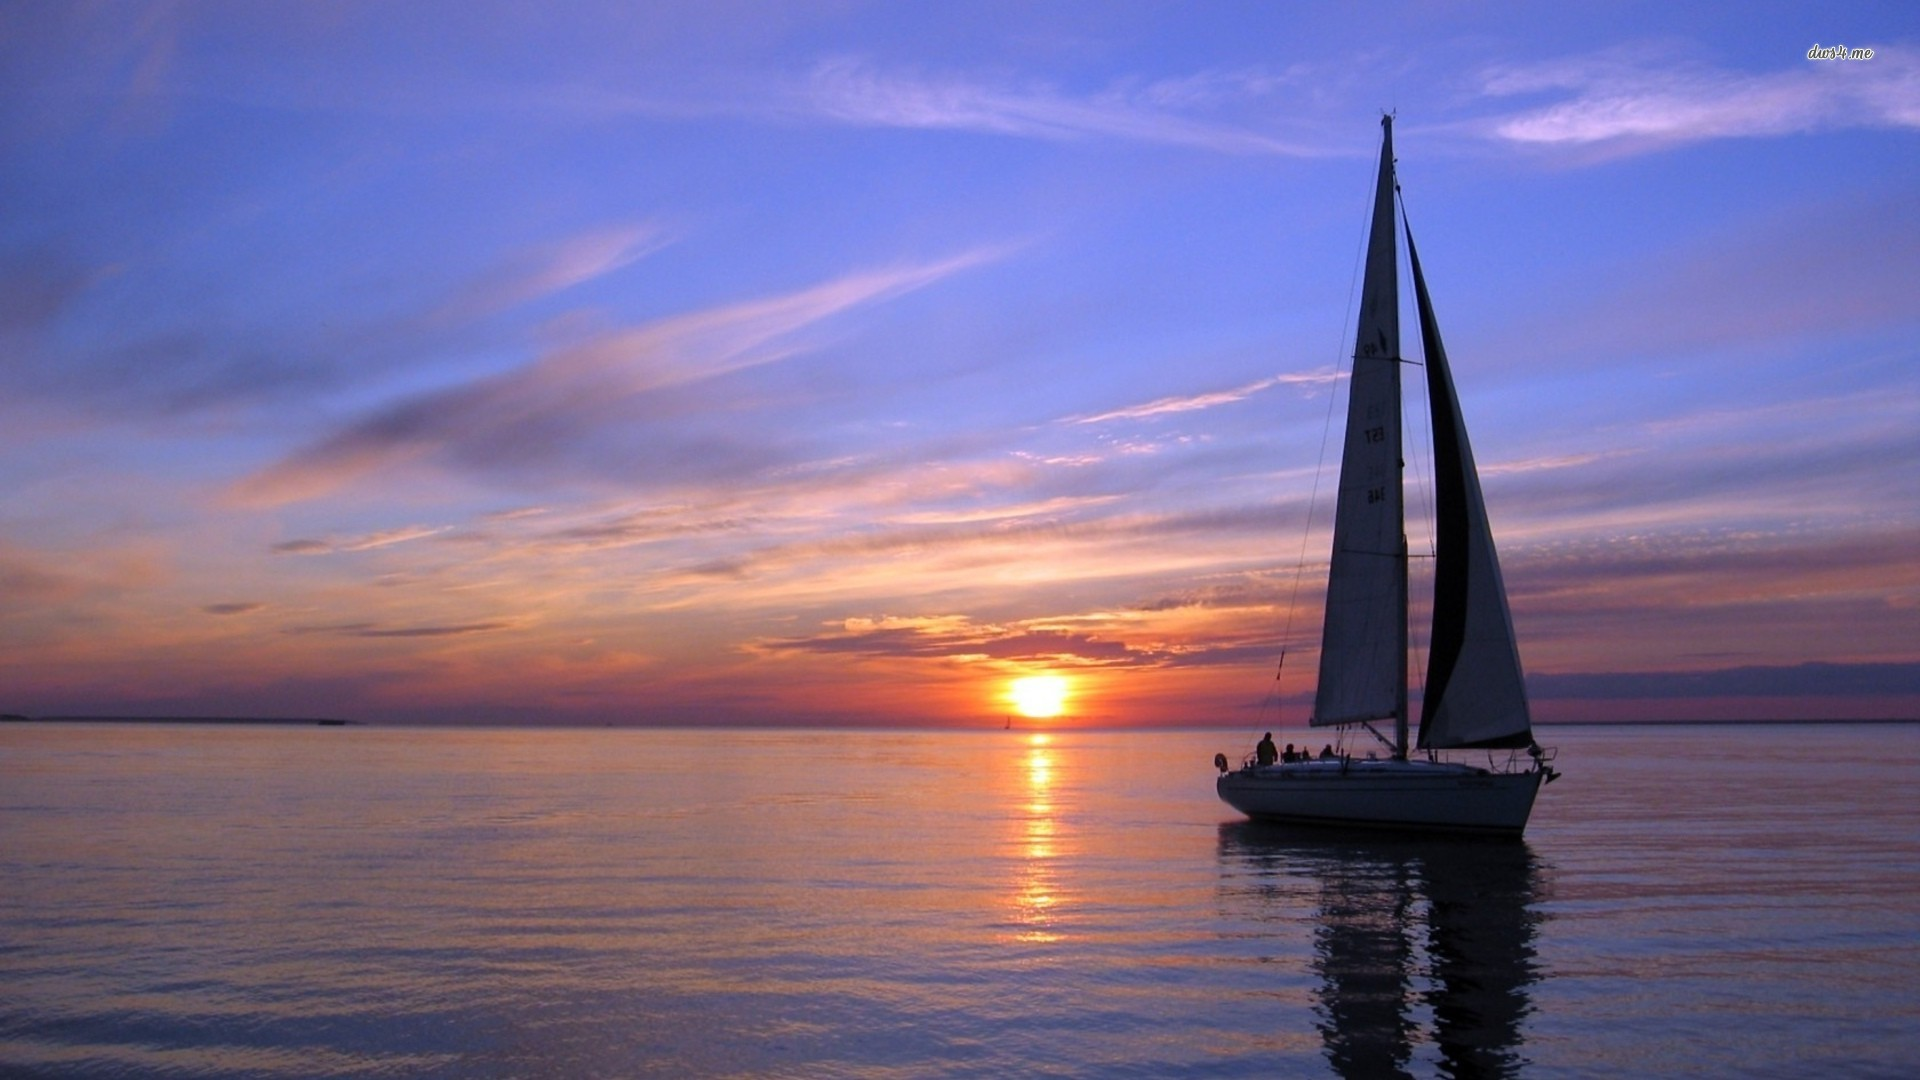 Hd Sailboat Wallpapers: Vehicles for Gt Sailboats Sunset Wallpaper 1920x1080px